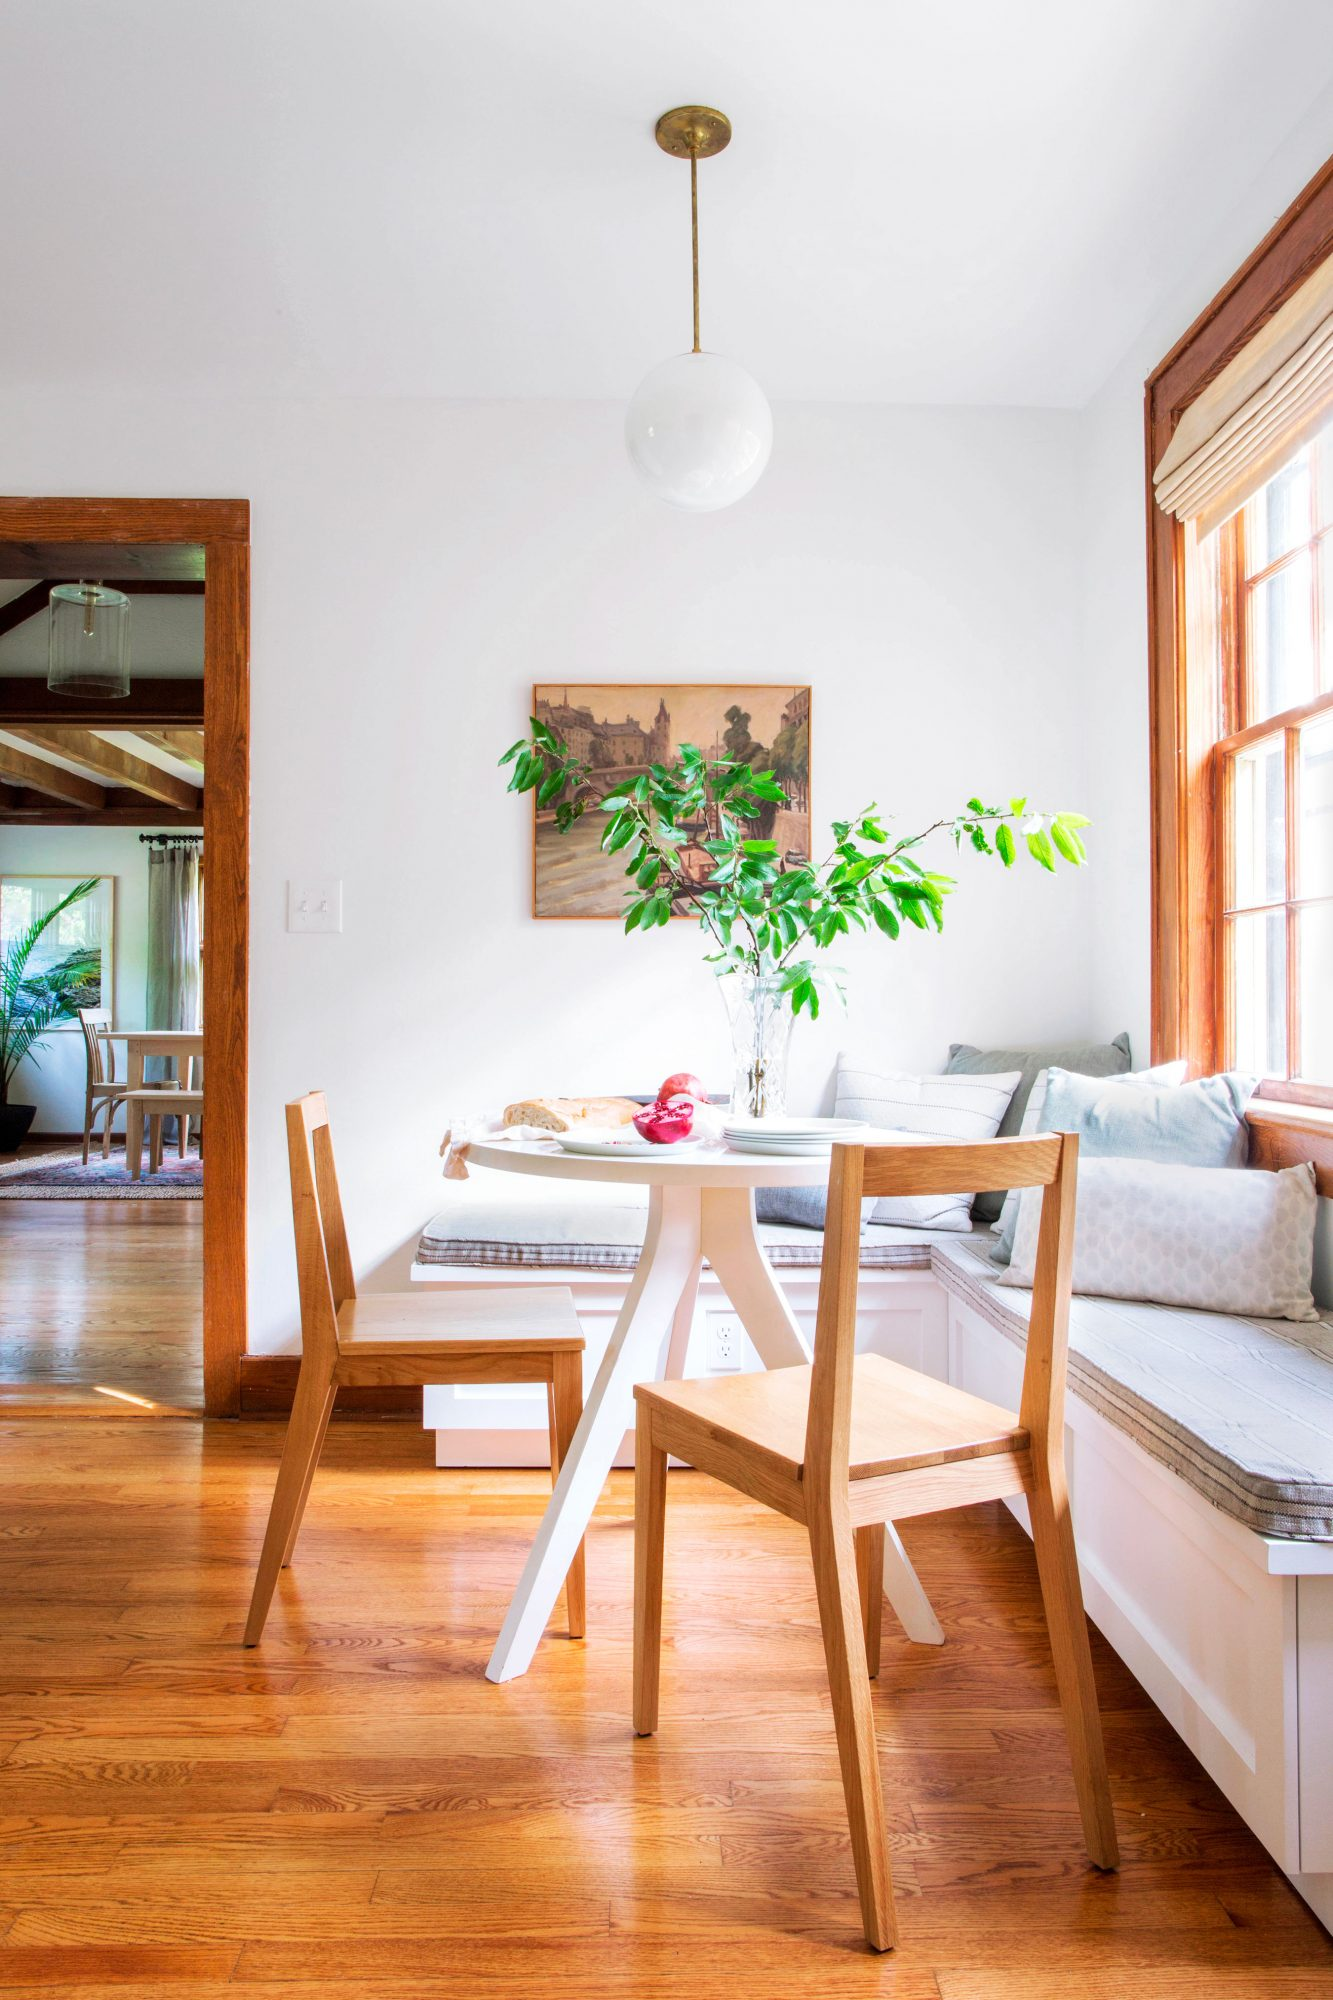 Breakfast nook with banquet seating